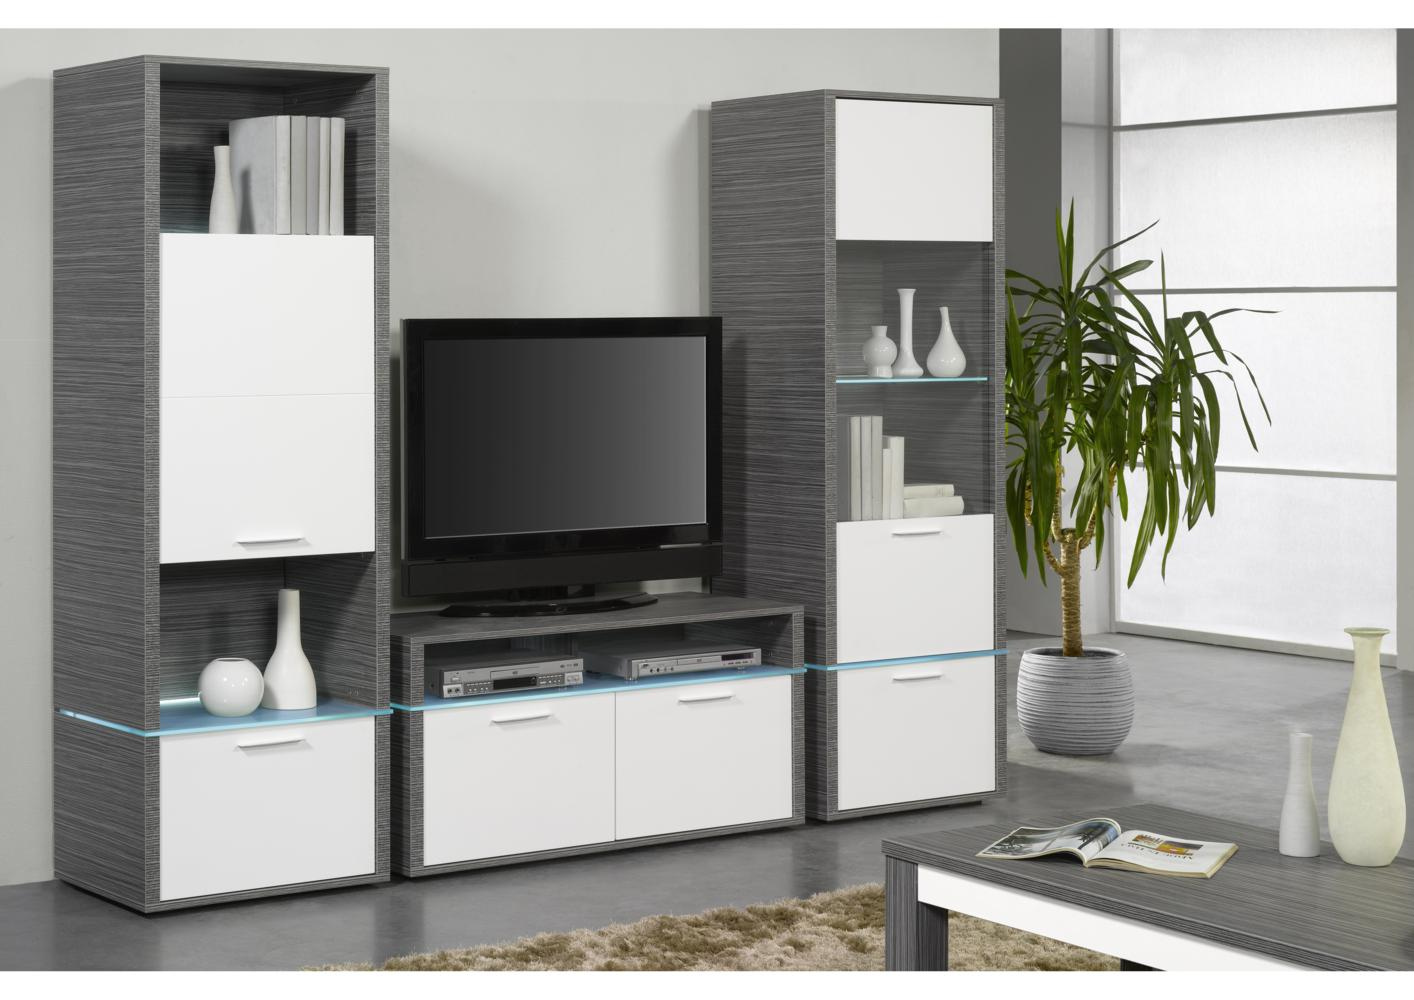 meuble tv avec colonne maison design. Black Bedroom Furniture Sets. Home Design Ideas